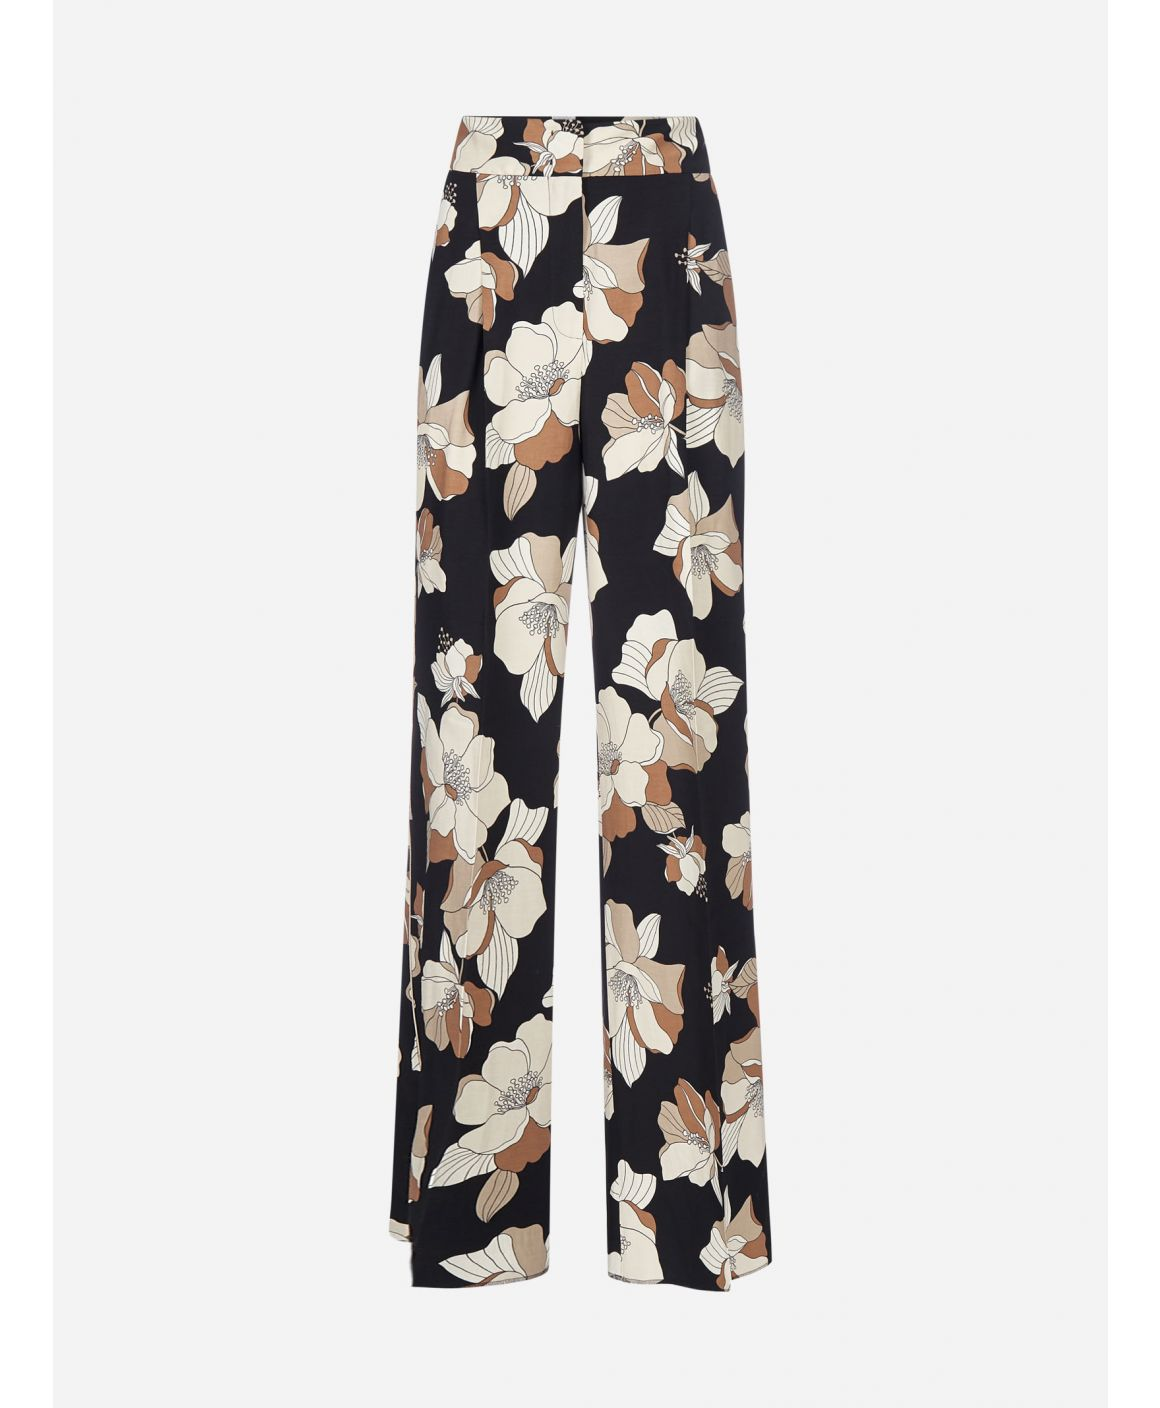 Farnese floral print viscose and linen trousers